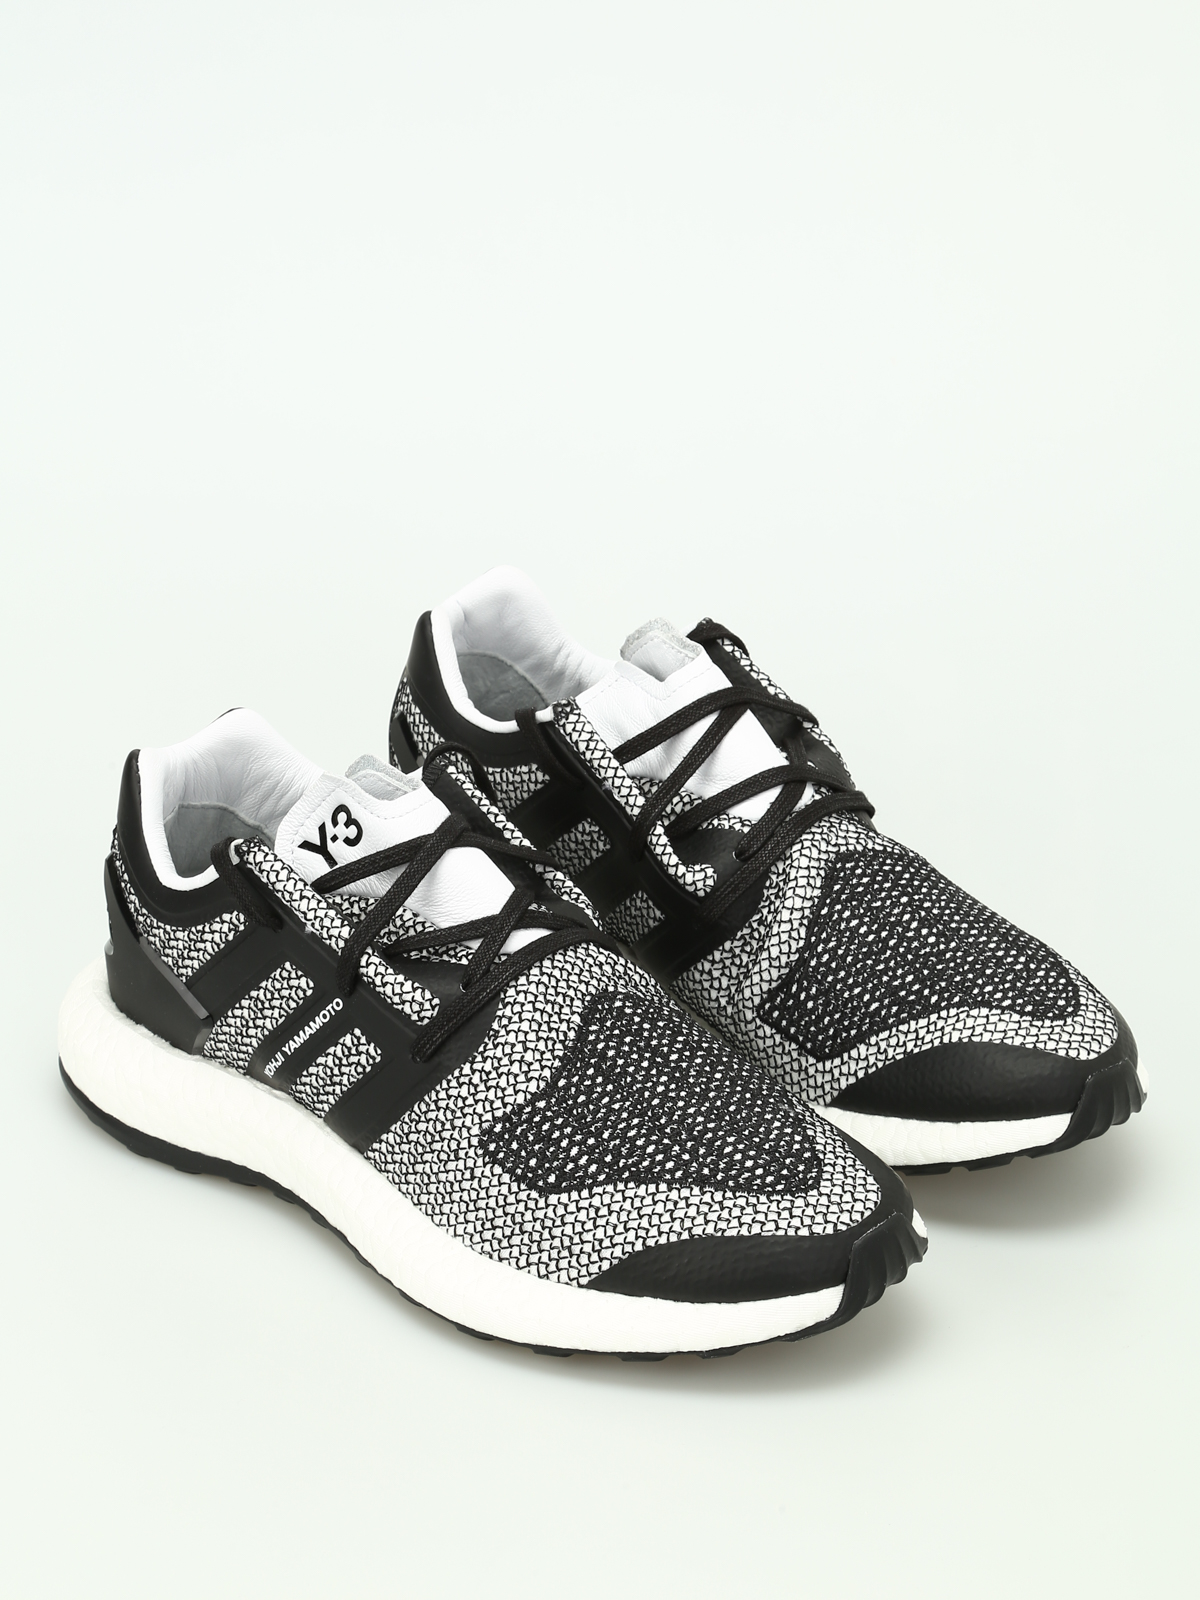 d5cc33ebf Adidas Y-3 - Pureboost mesh sneakers - trainers - CP9888